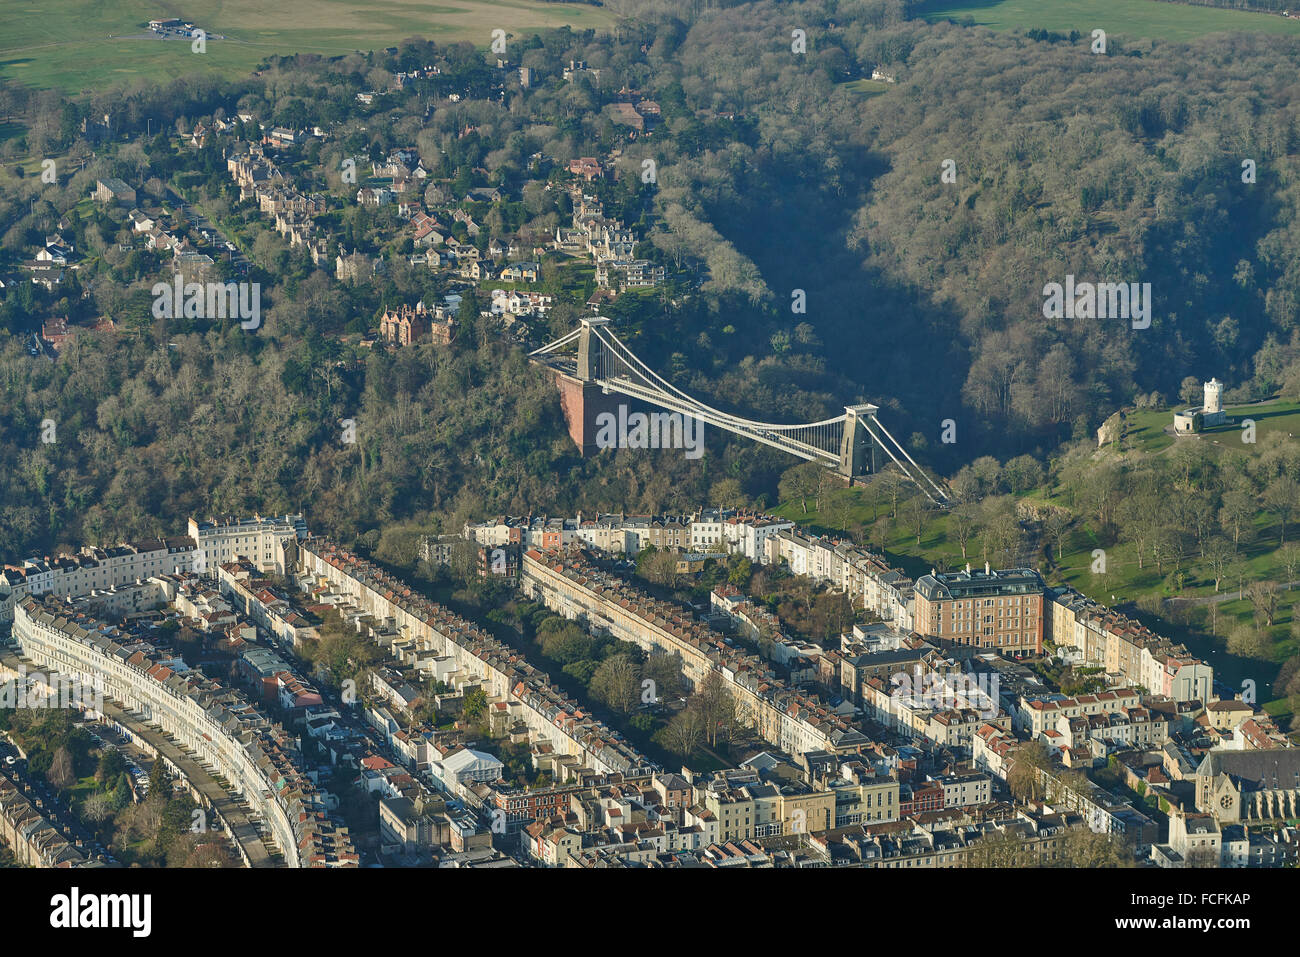 An aerial view of the Clifton Suspension Bridge and surroundings - Stock Image